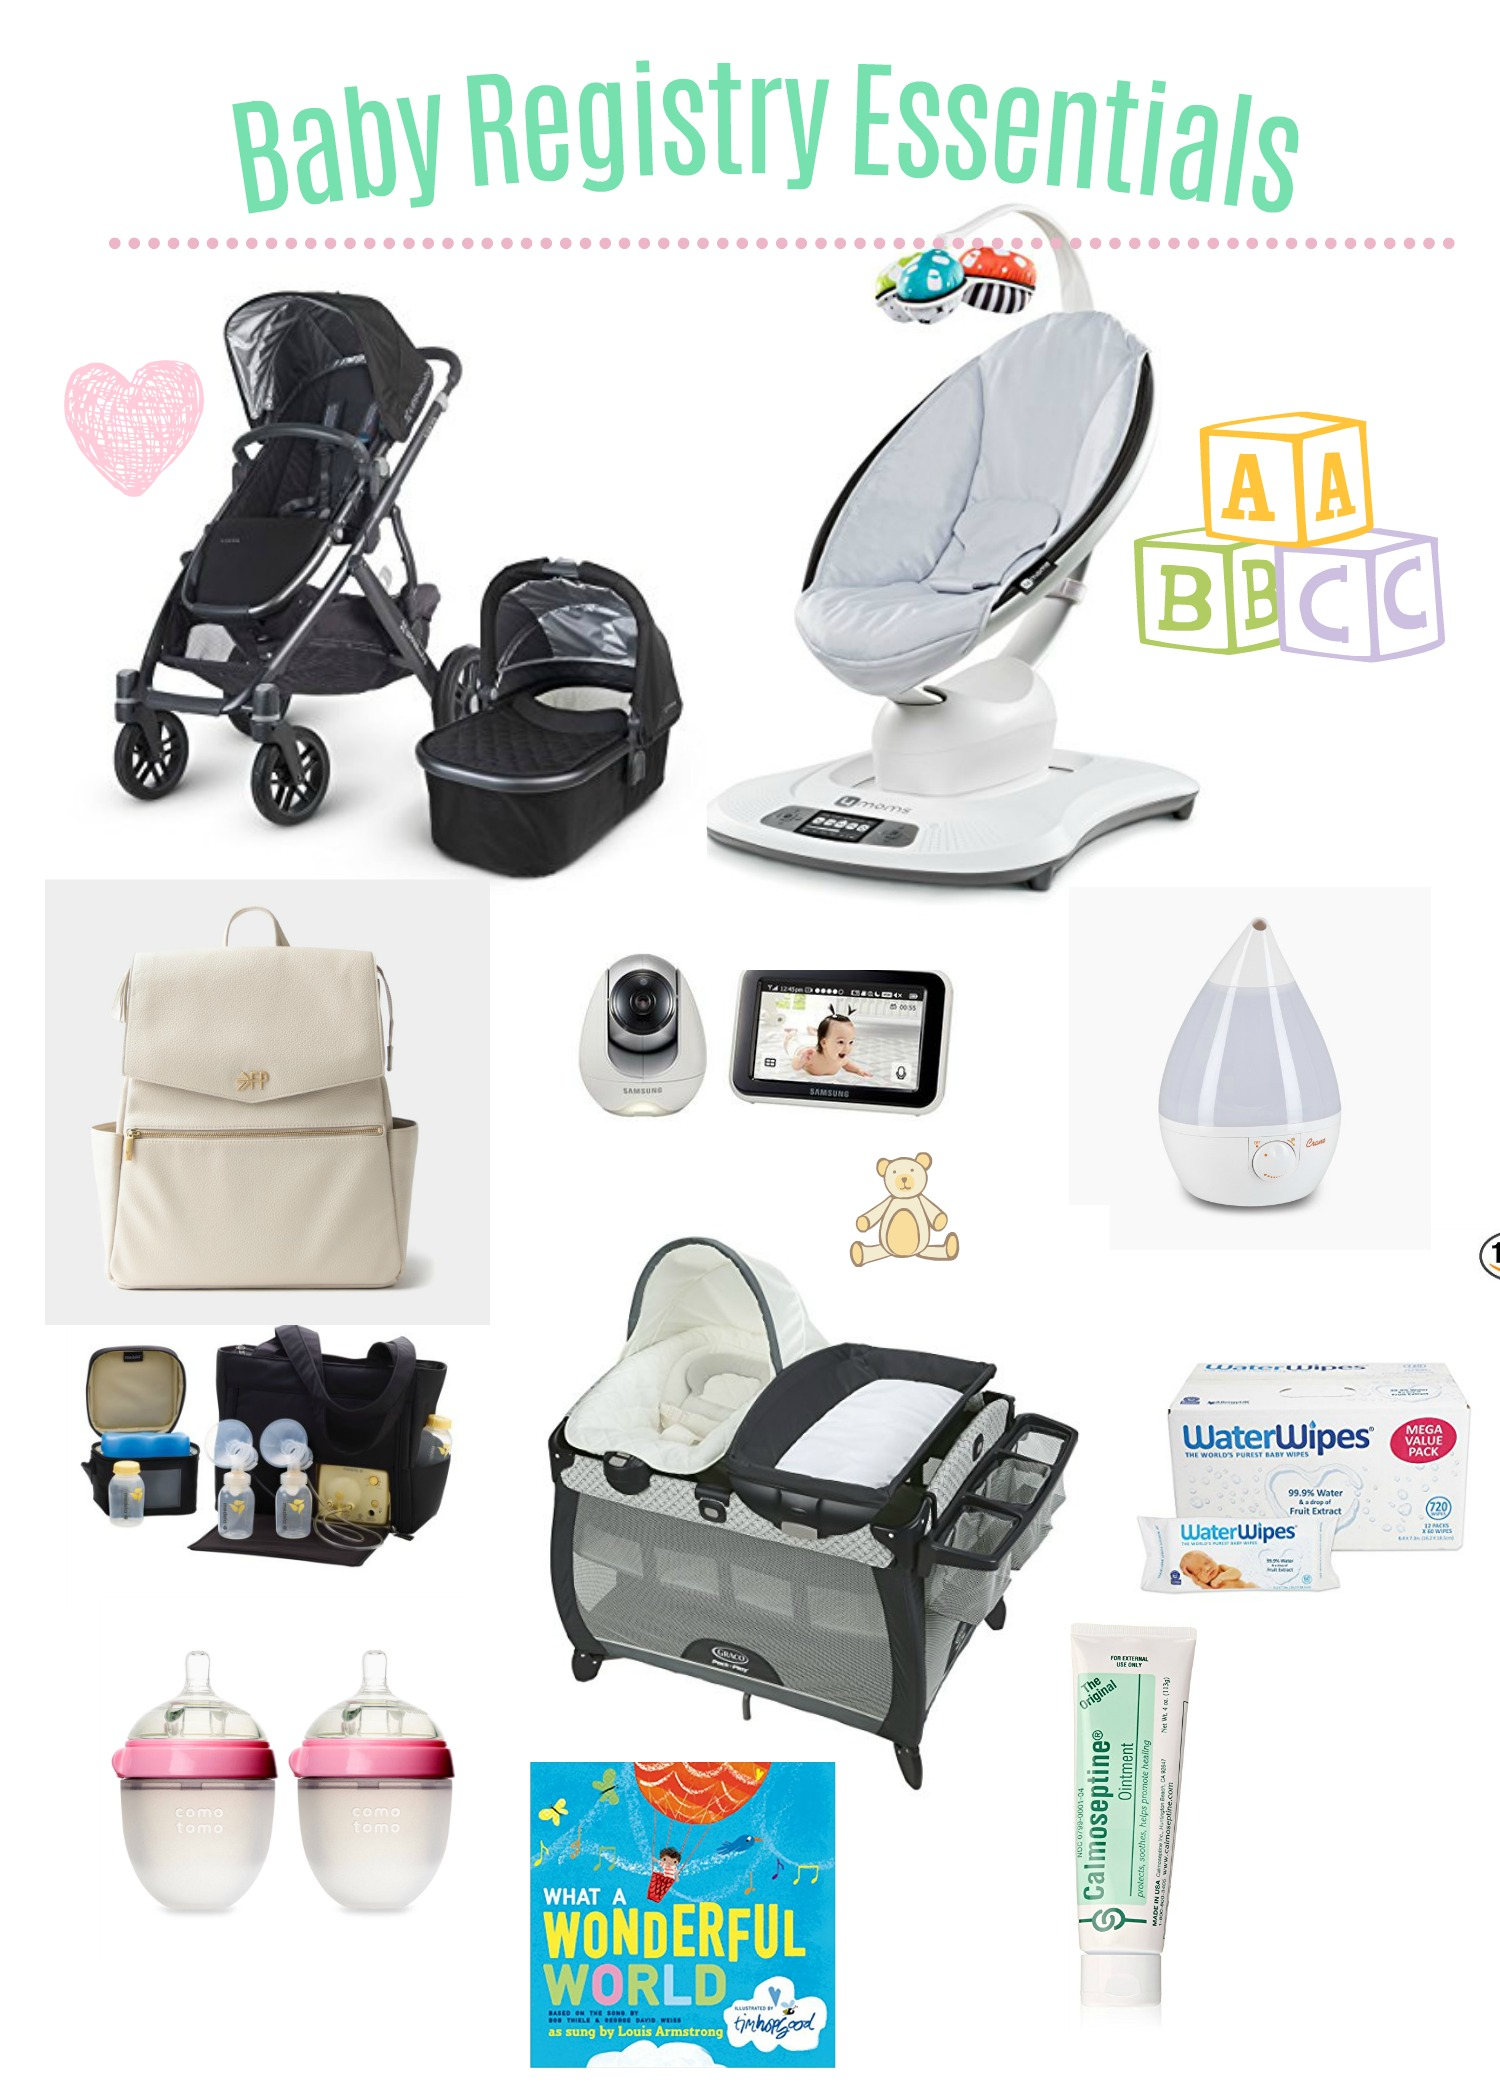 Baby Registry Essentials - A Mom's Daily Dosage